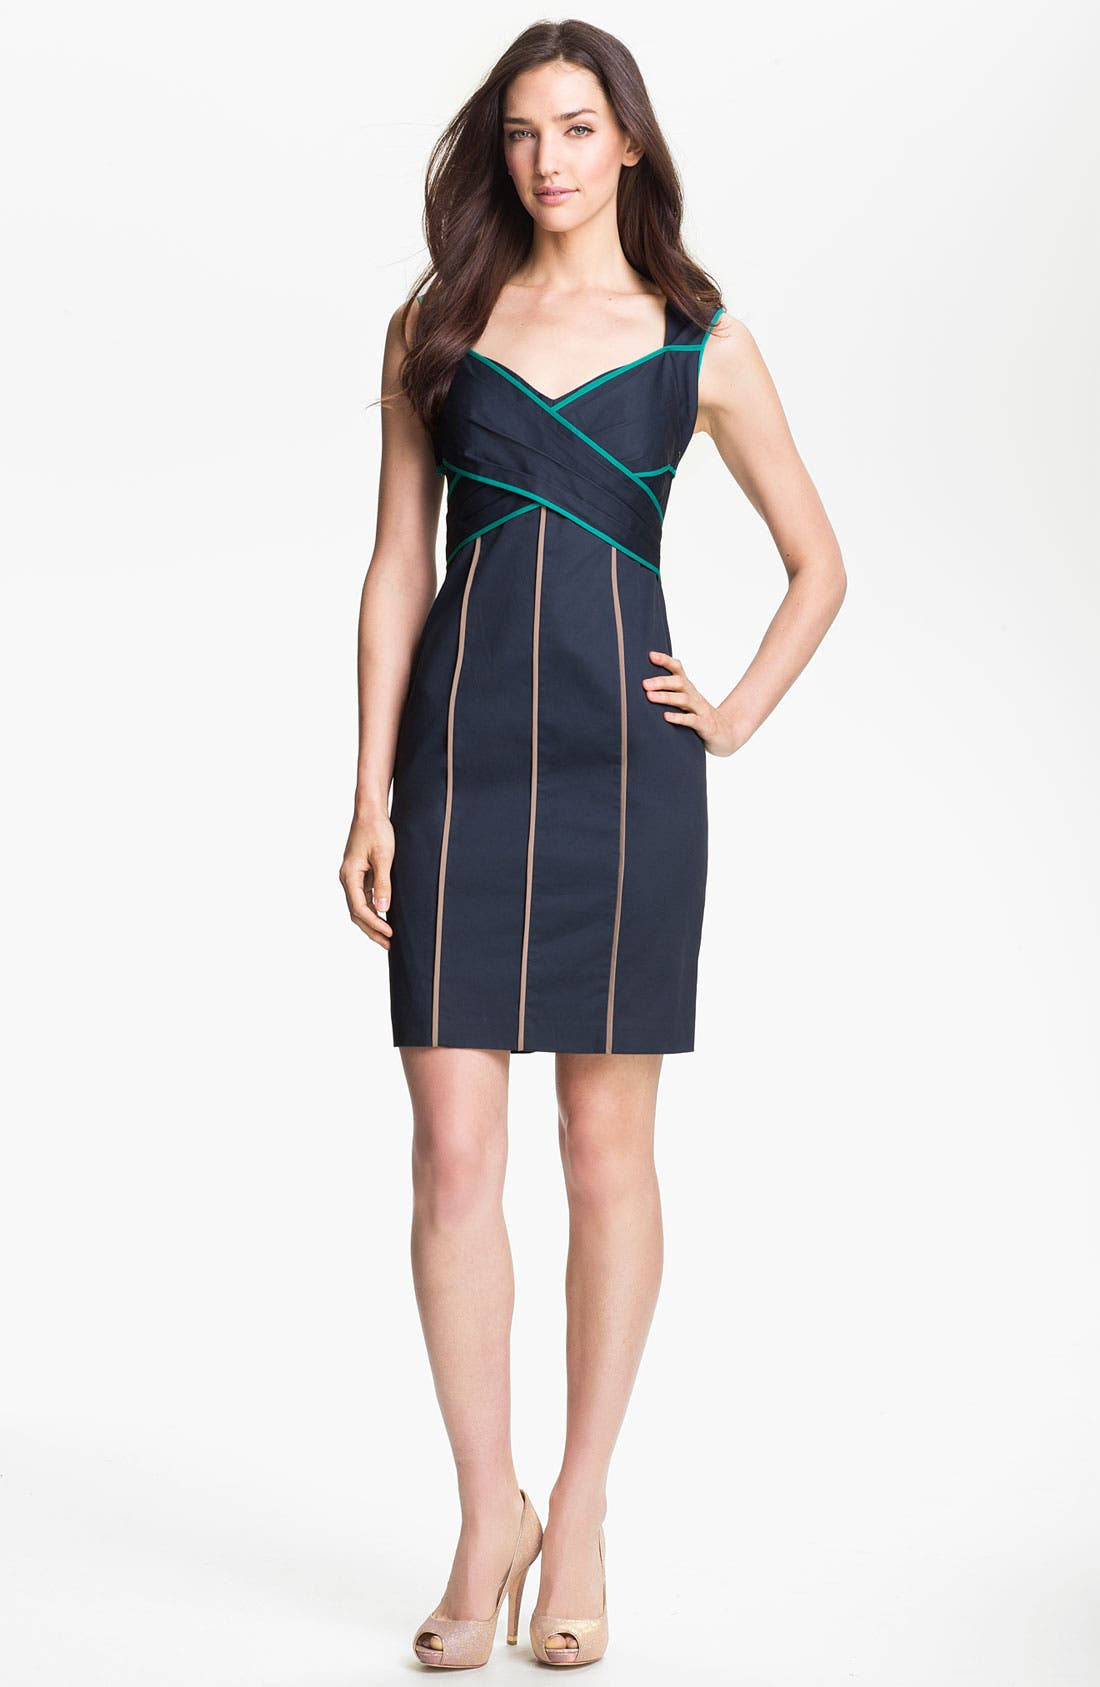 Alternate Image 1 Selected - Jessica Simpson Contrast Piping Cotton Sheath Dress